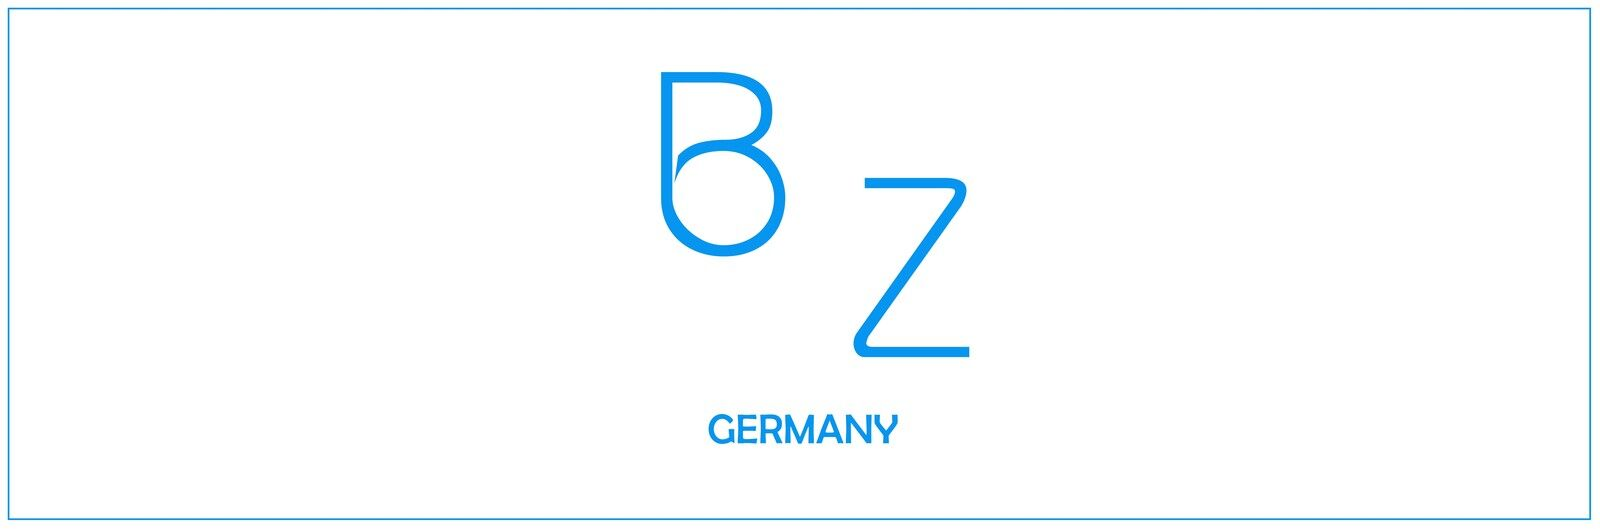 bz-germany